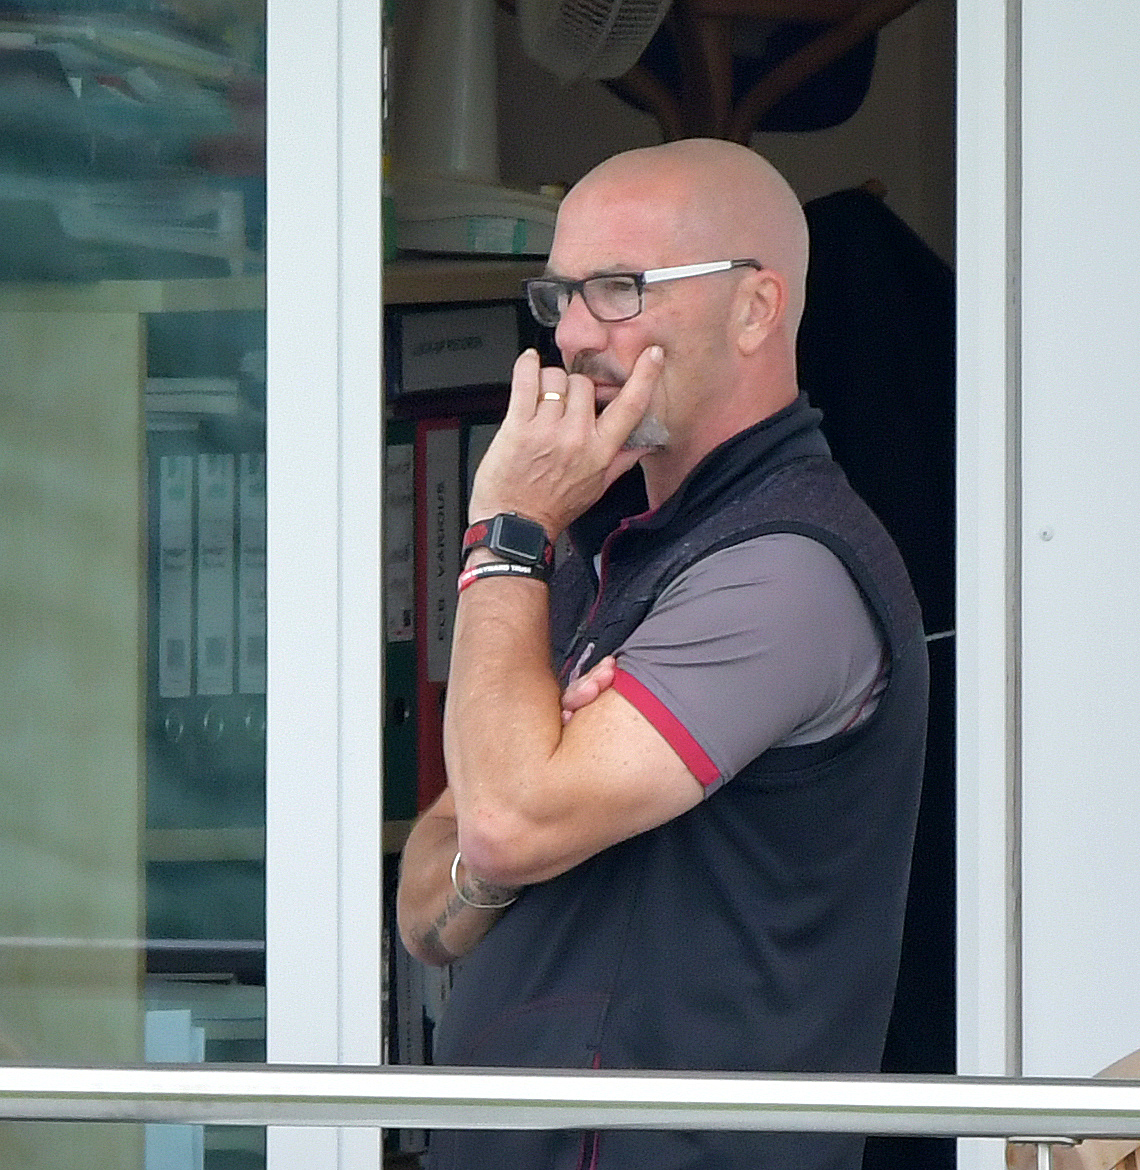 'SADDENED': Matthew Maynard has given his reaction after his departure as Somerset's director of cricket